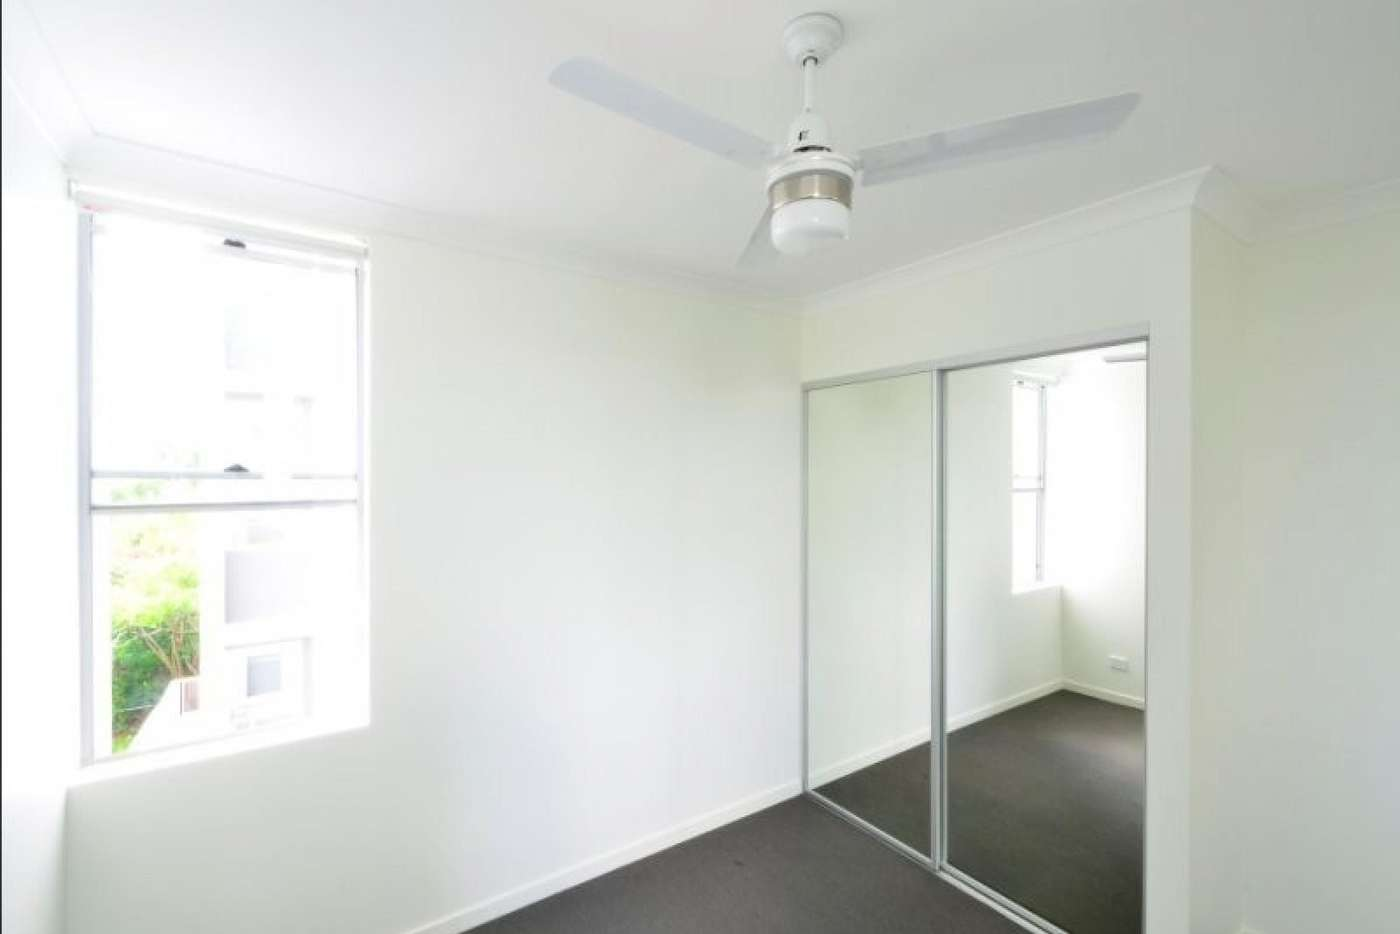 Seventh view of Homely apartment listing, 28 Carl, Woolloongabba QLD 4102